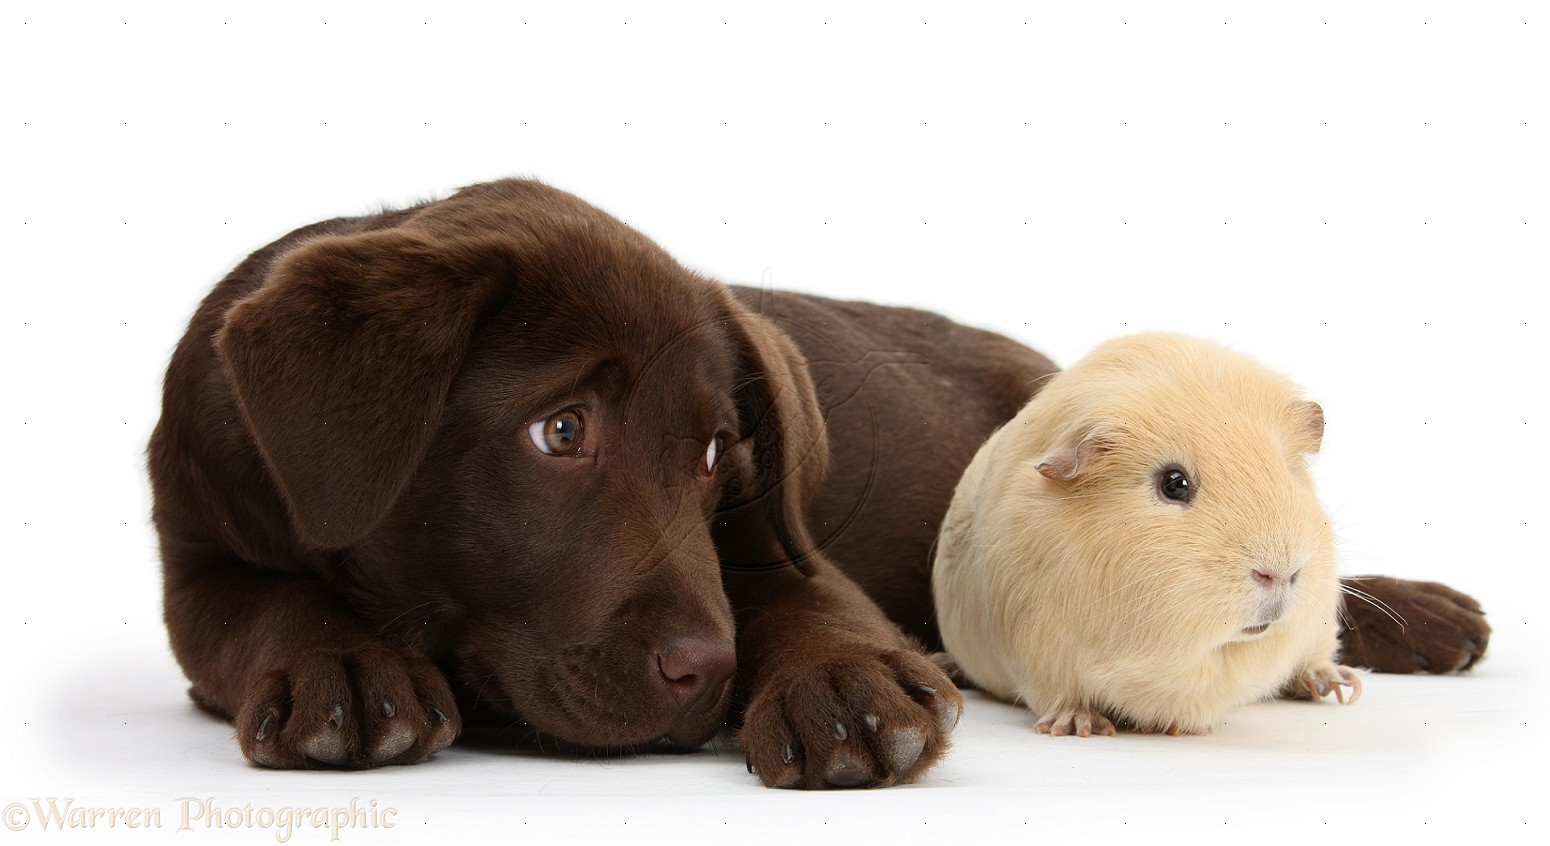 Chocolate Labrador pup, Lucie, 3 months old, with red Guinea pig